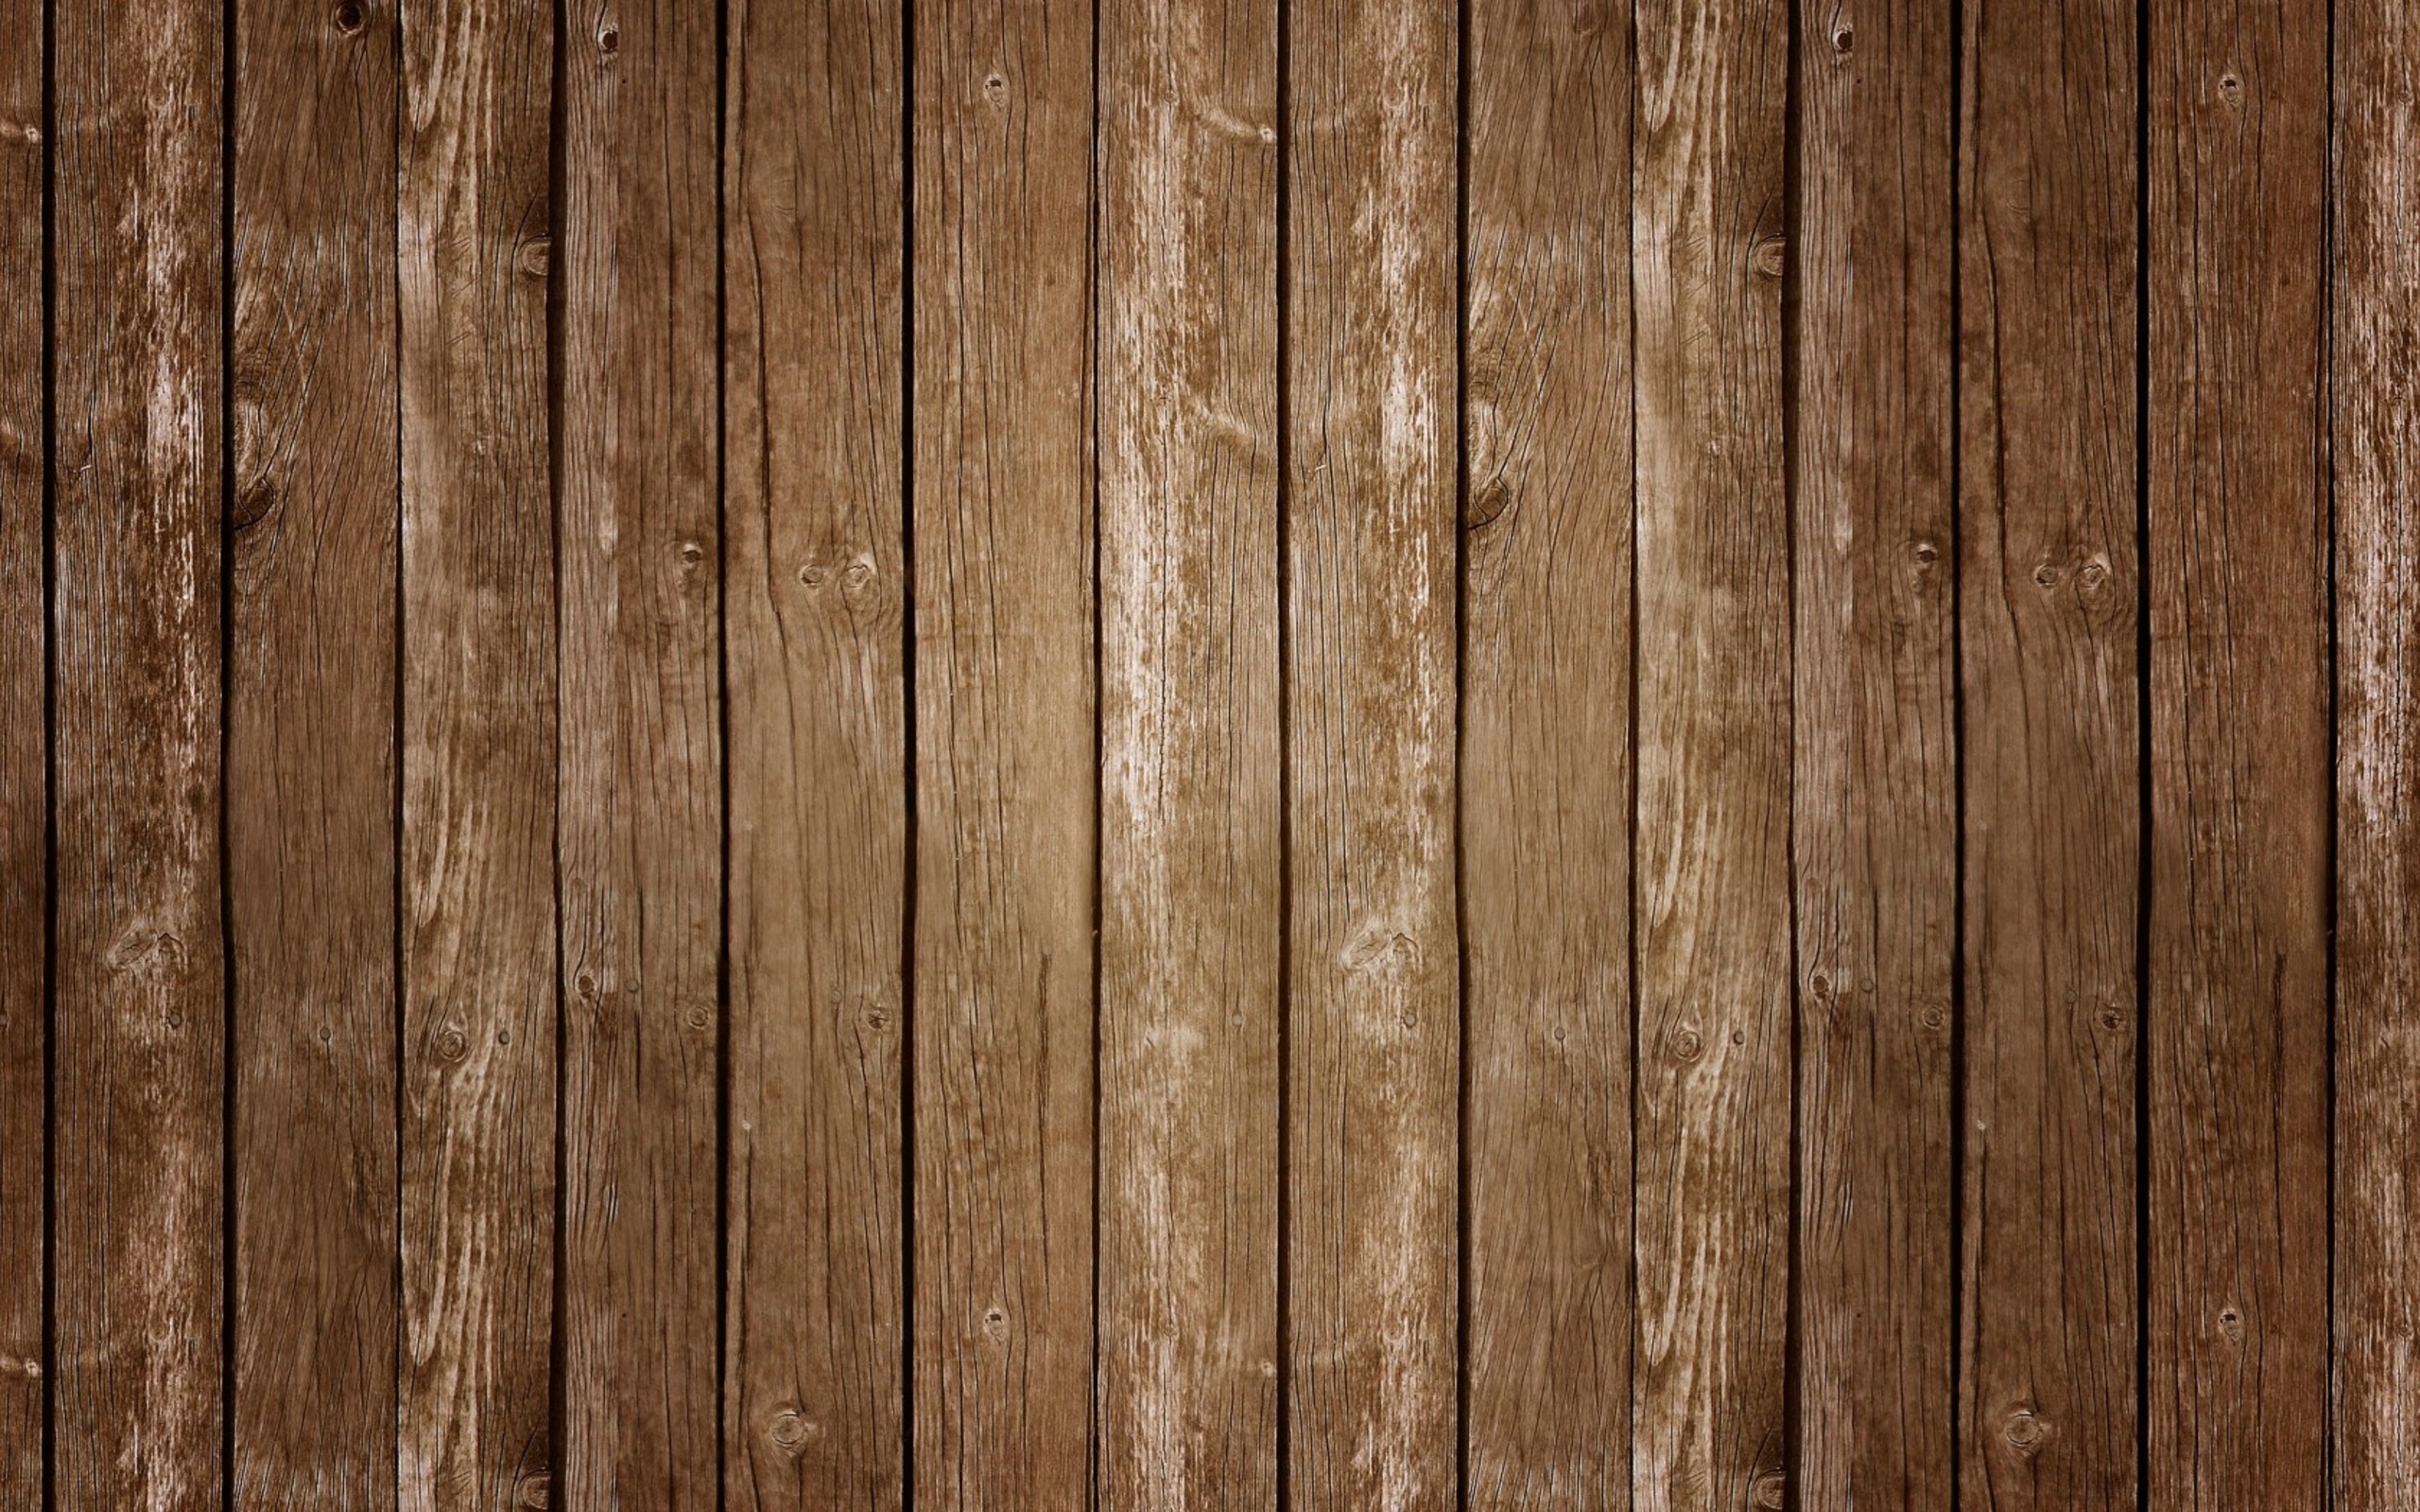 Wood Wall Paper 183 wood hd wallpapers | backgrounds - wallpaper abyss